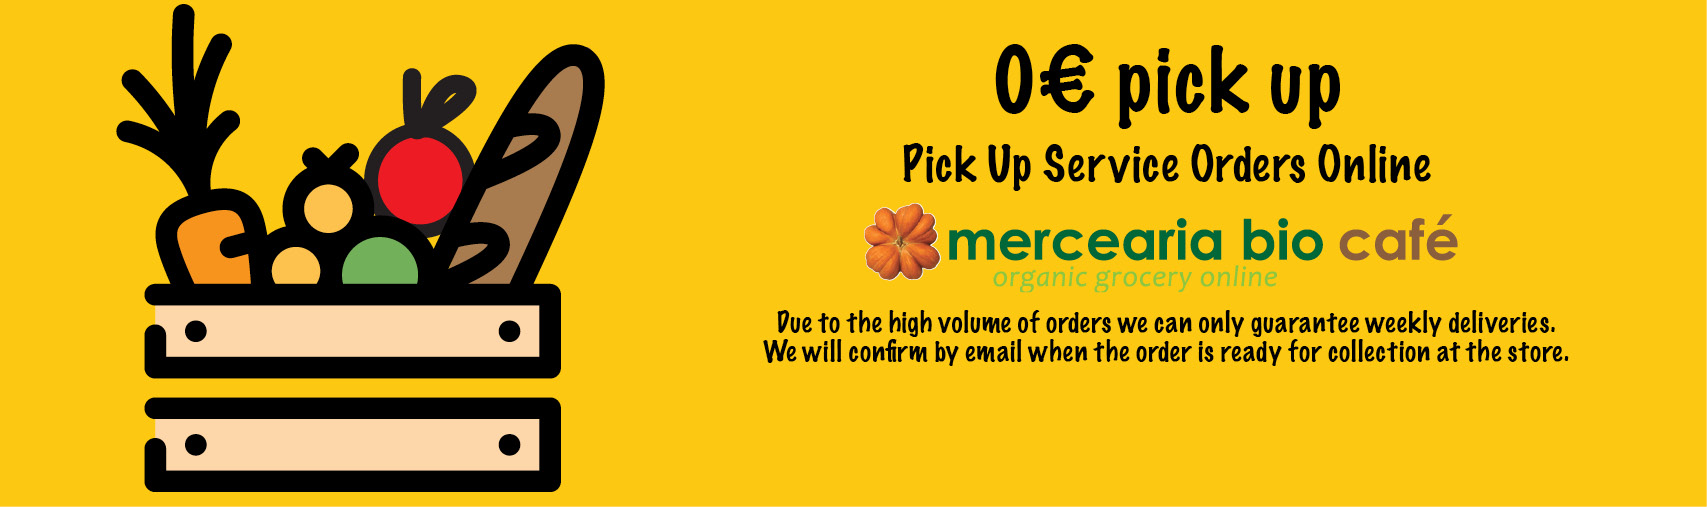 Pick Up Service Orders Online Mercearia Bio Café